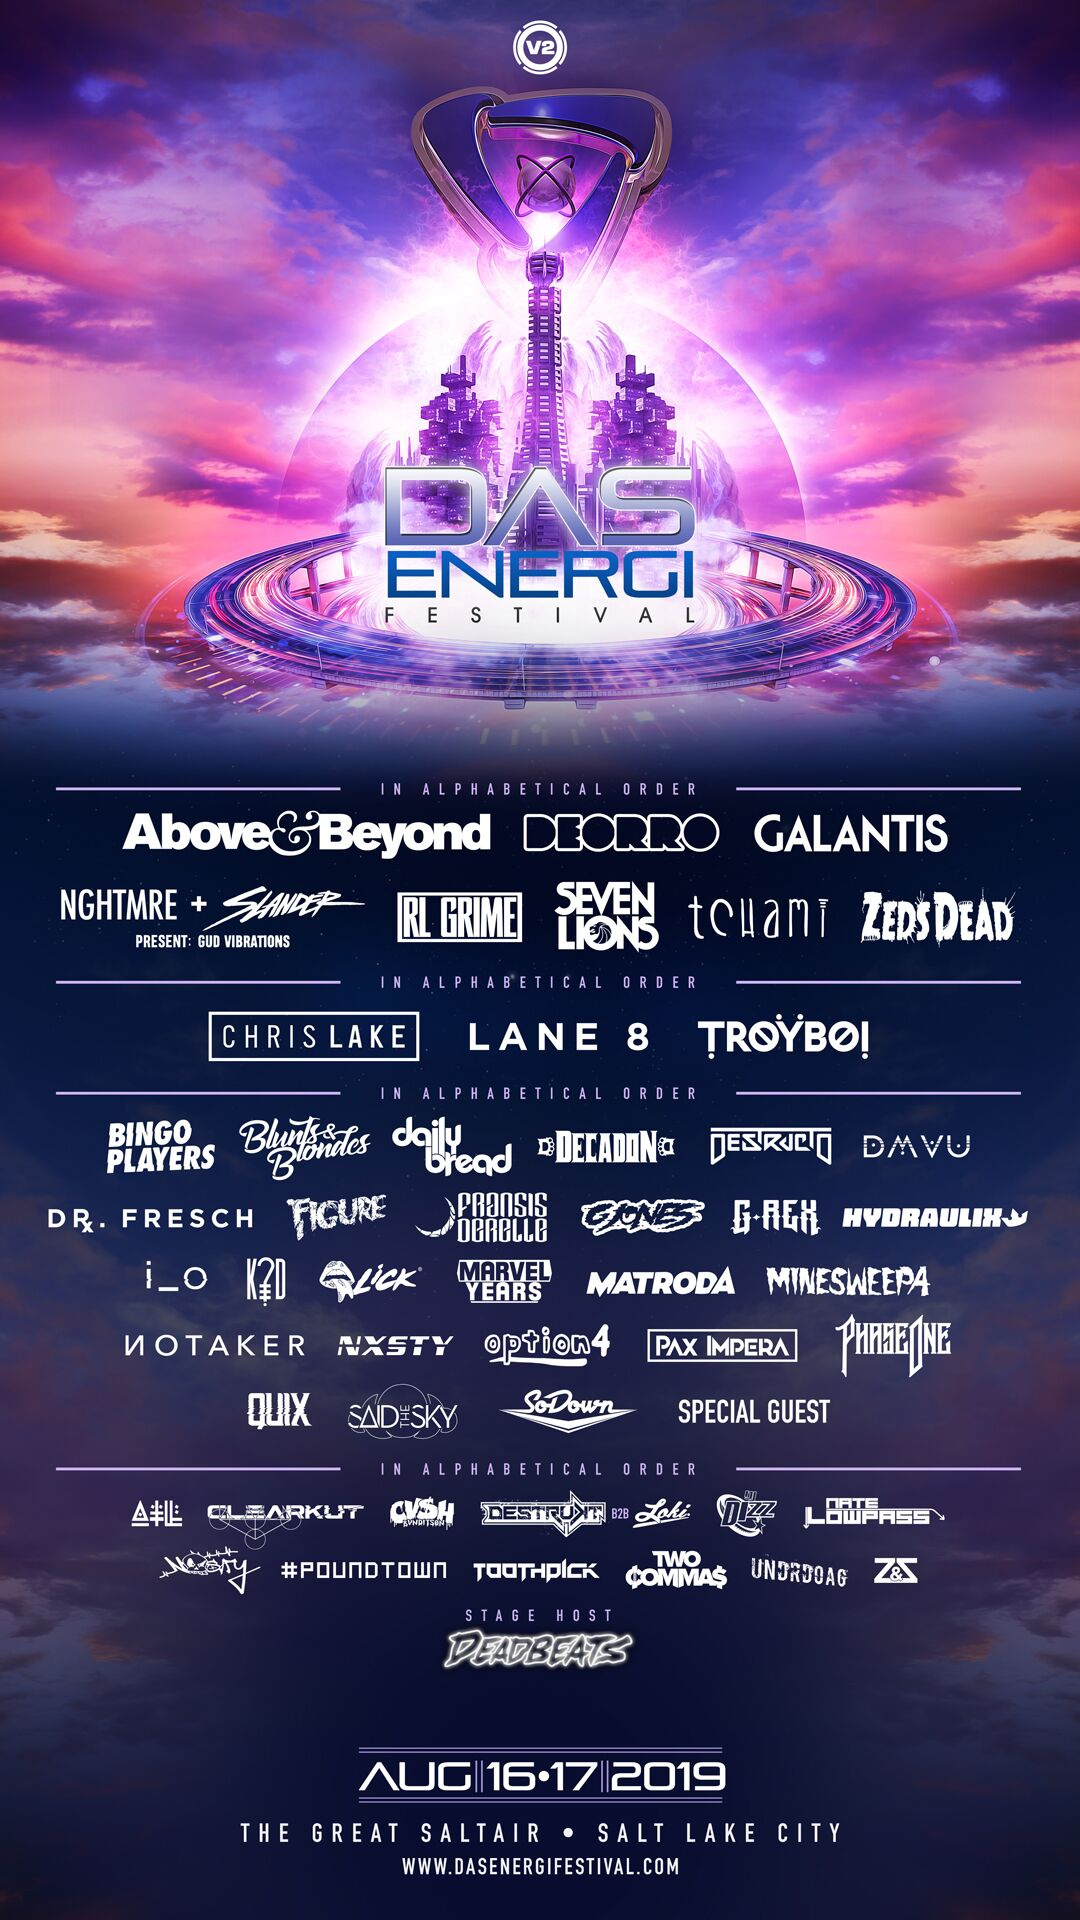 Das Energi 2019 Lineup - Das Energi Releases Full Lineup for 2019 Festival